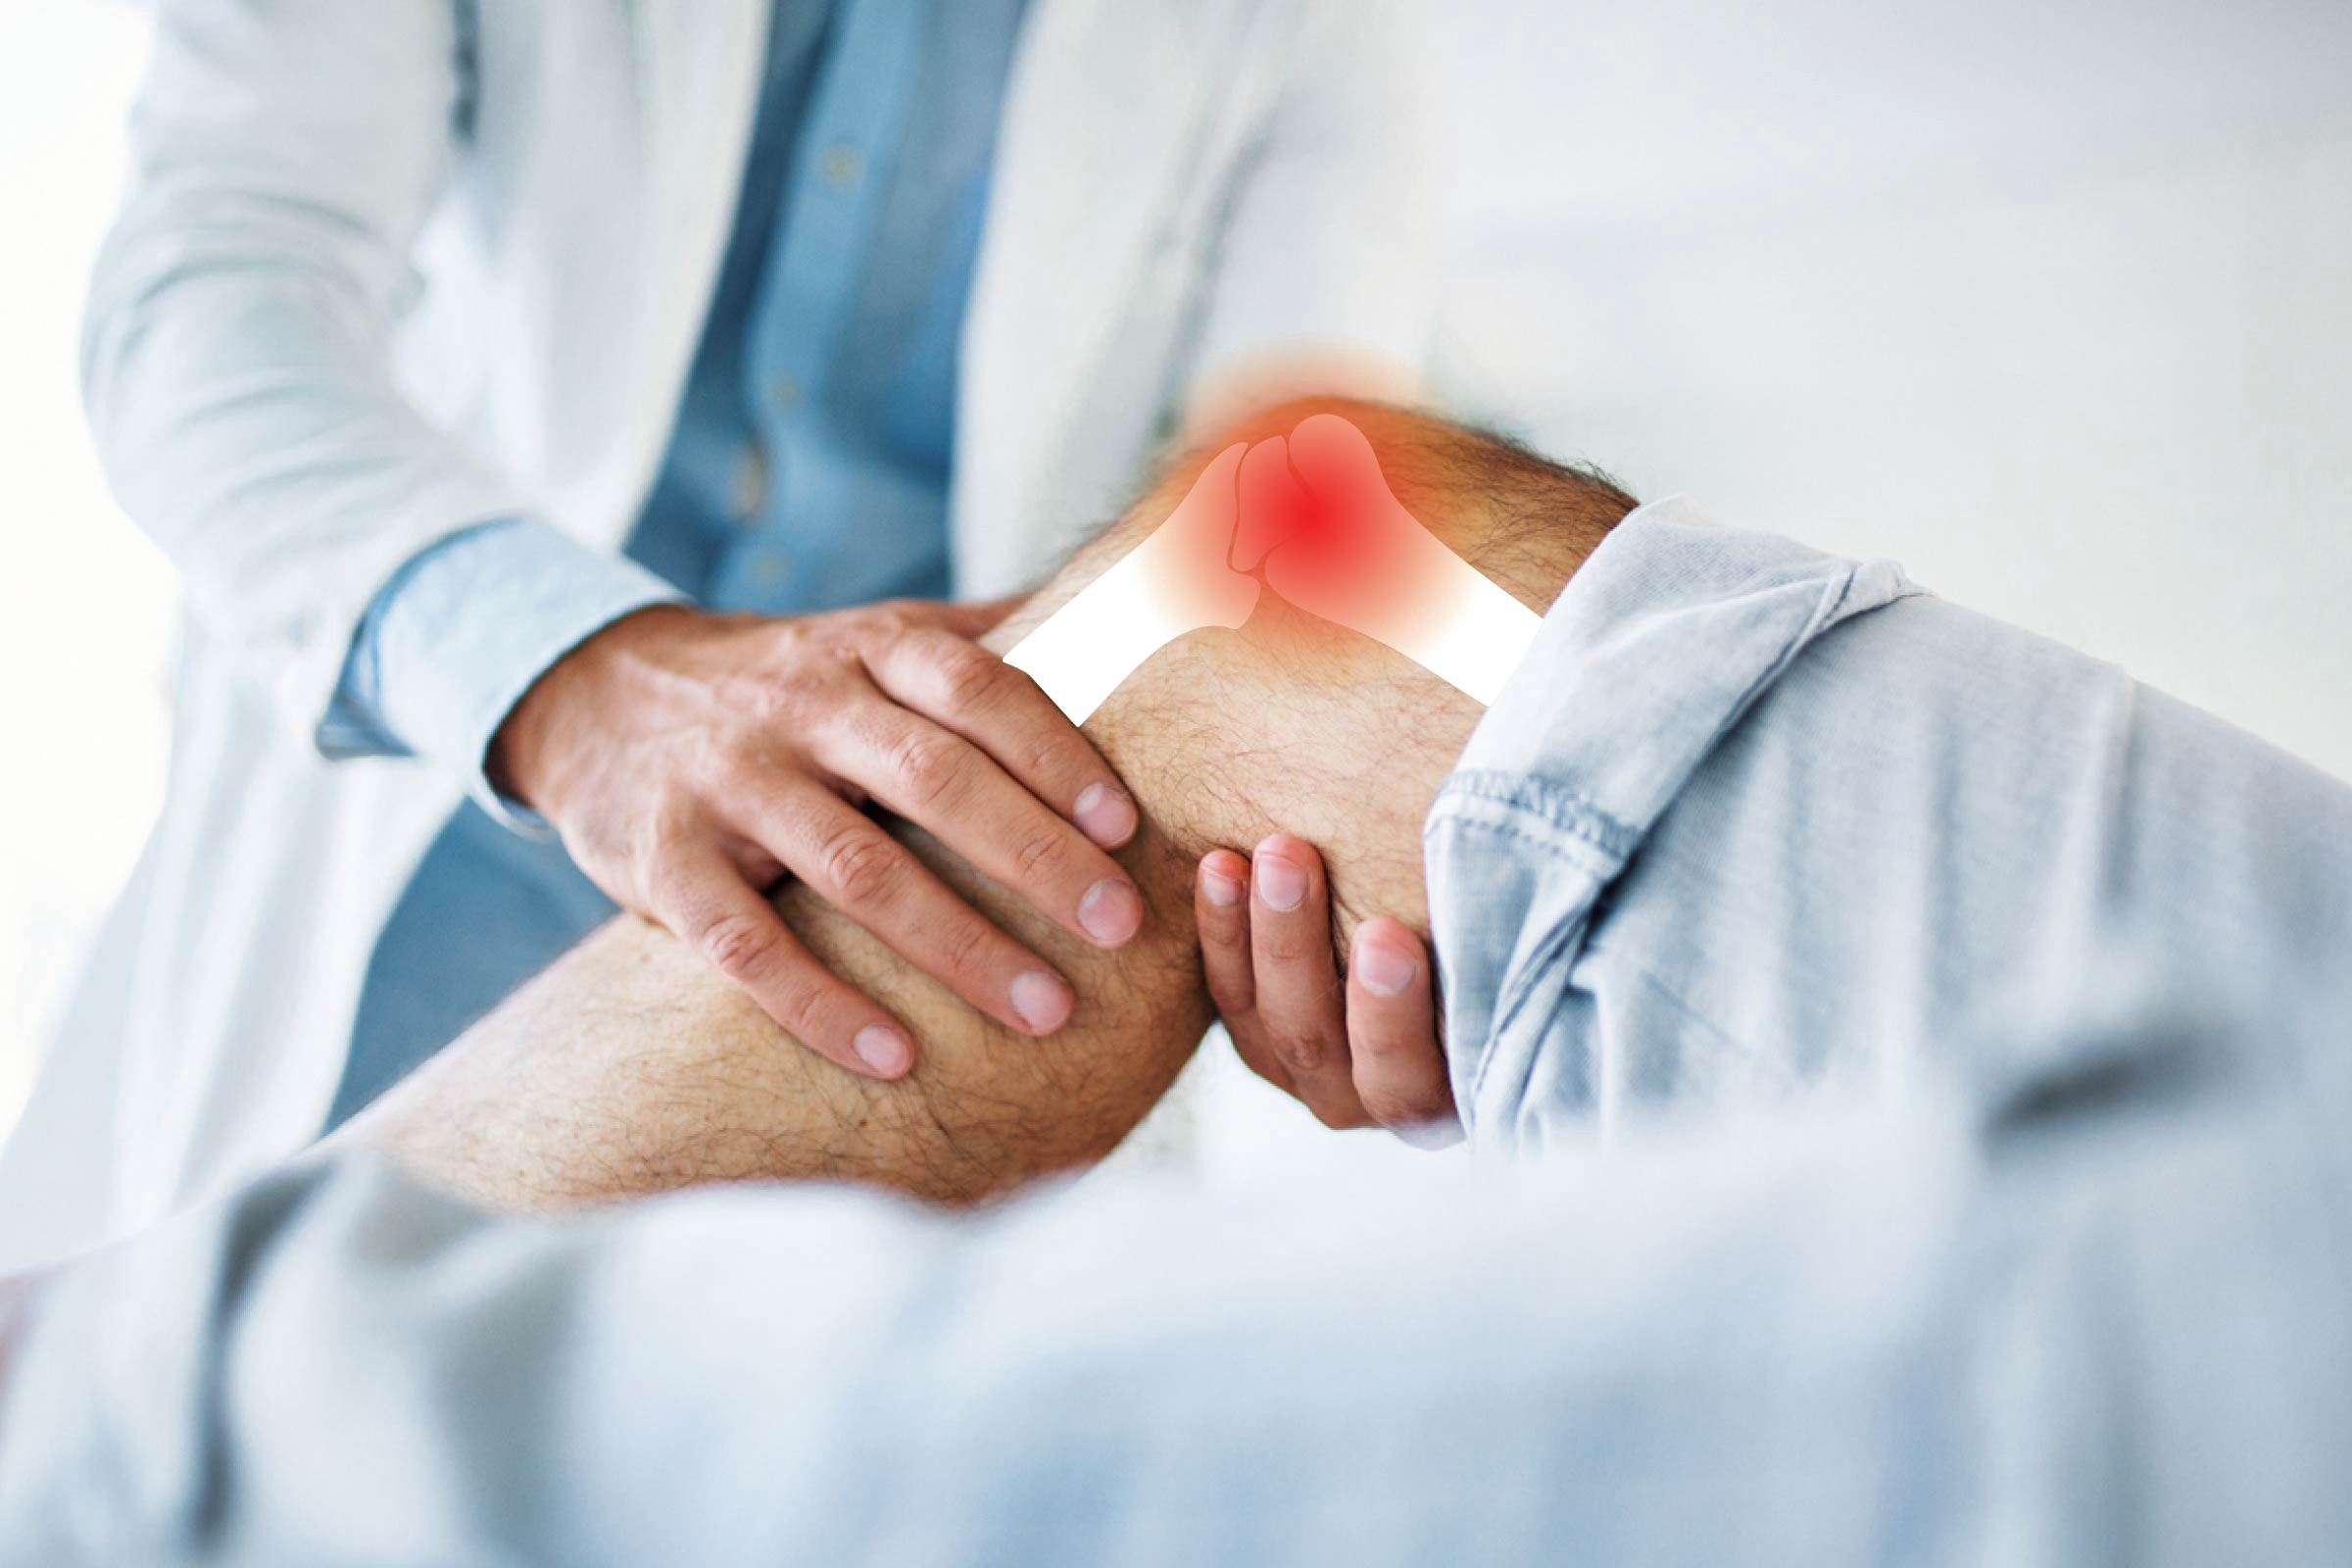 knee arthritis pain treatments Core Medical Group Brooklyn Ohio